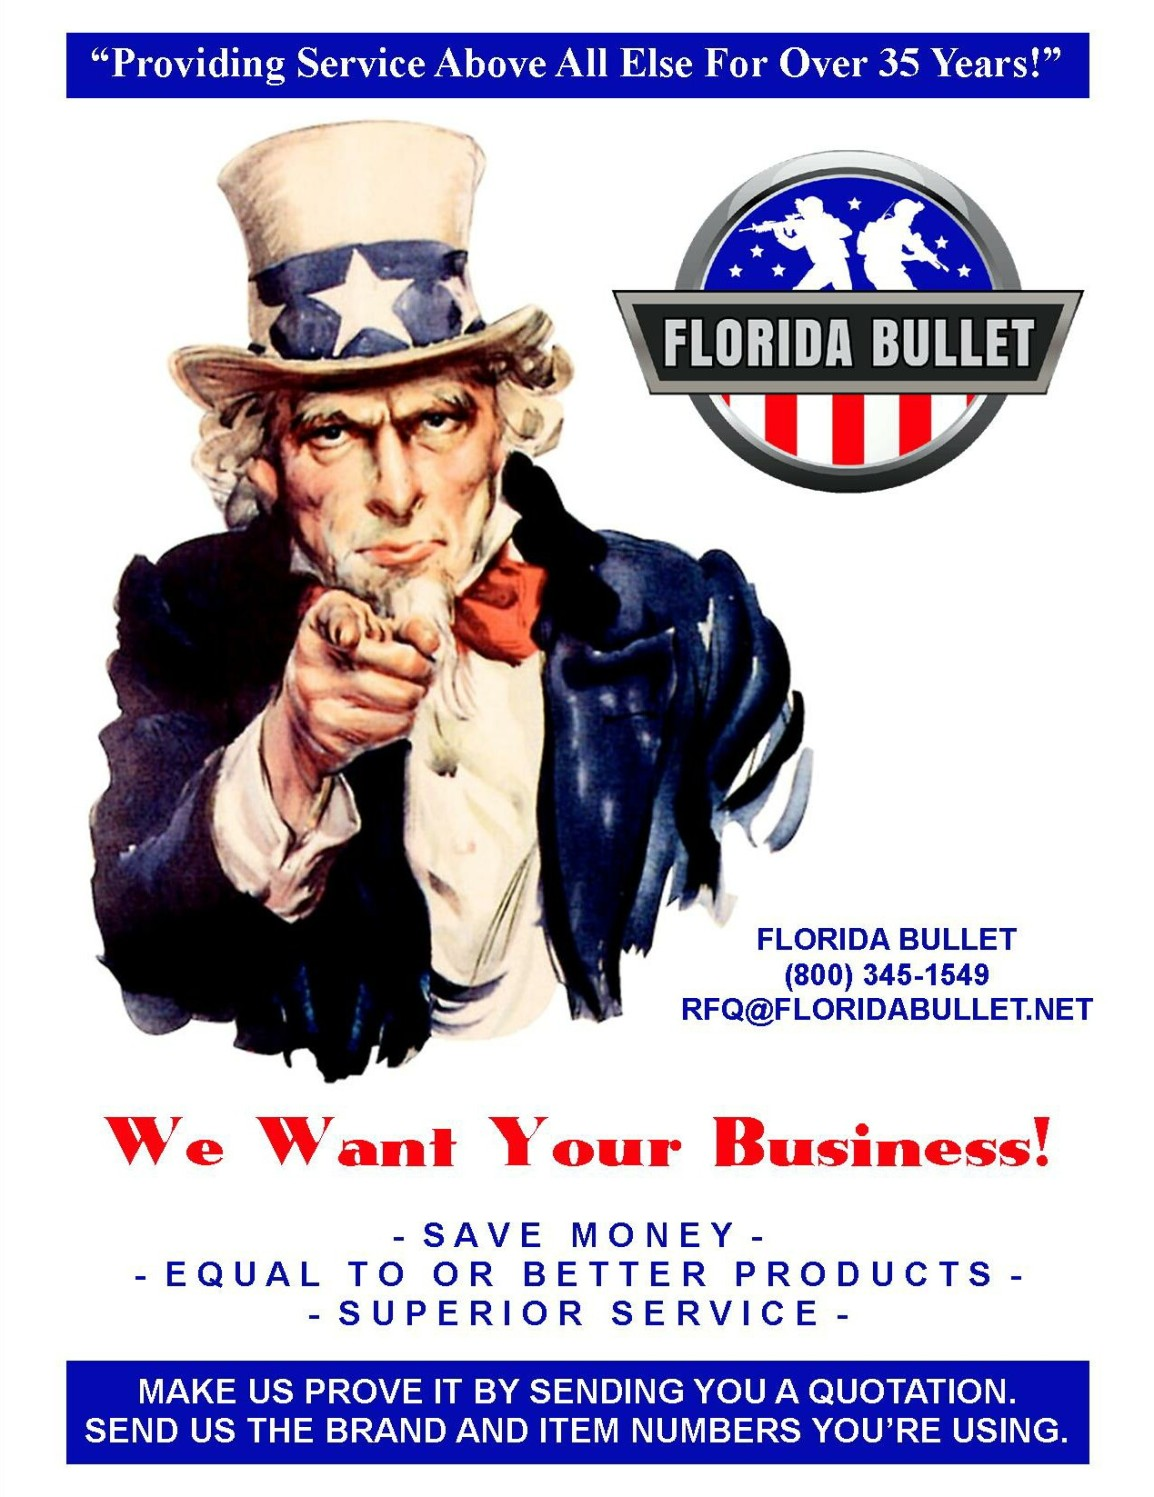 Florida Bullet Wants Your Business! v.F.jpg